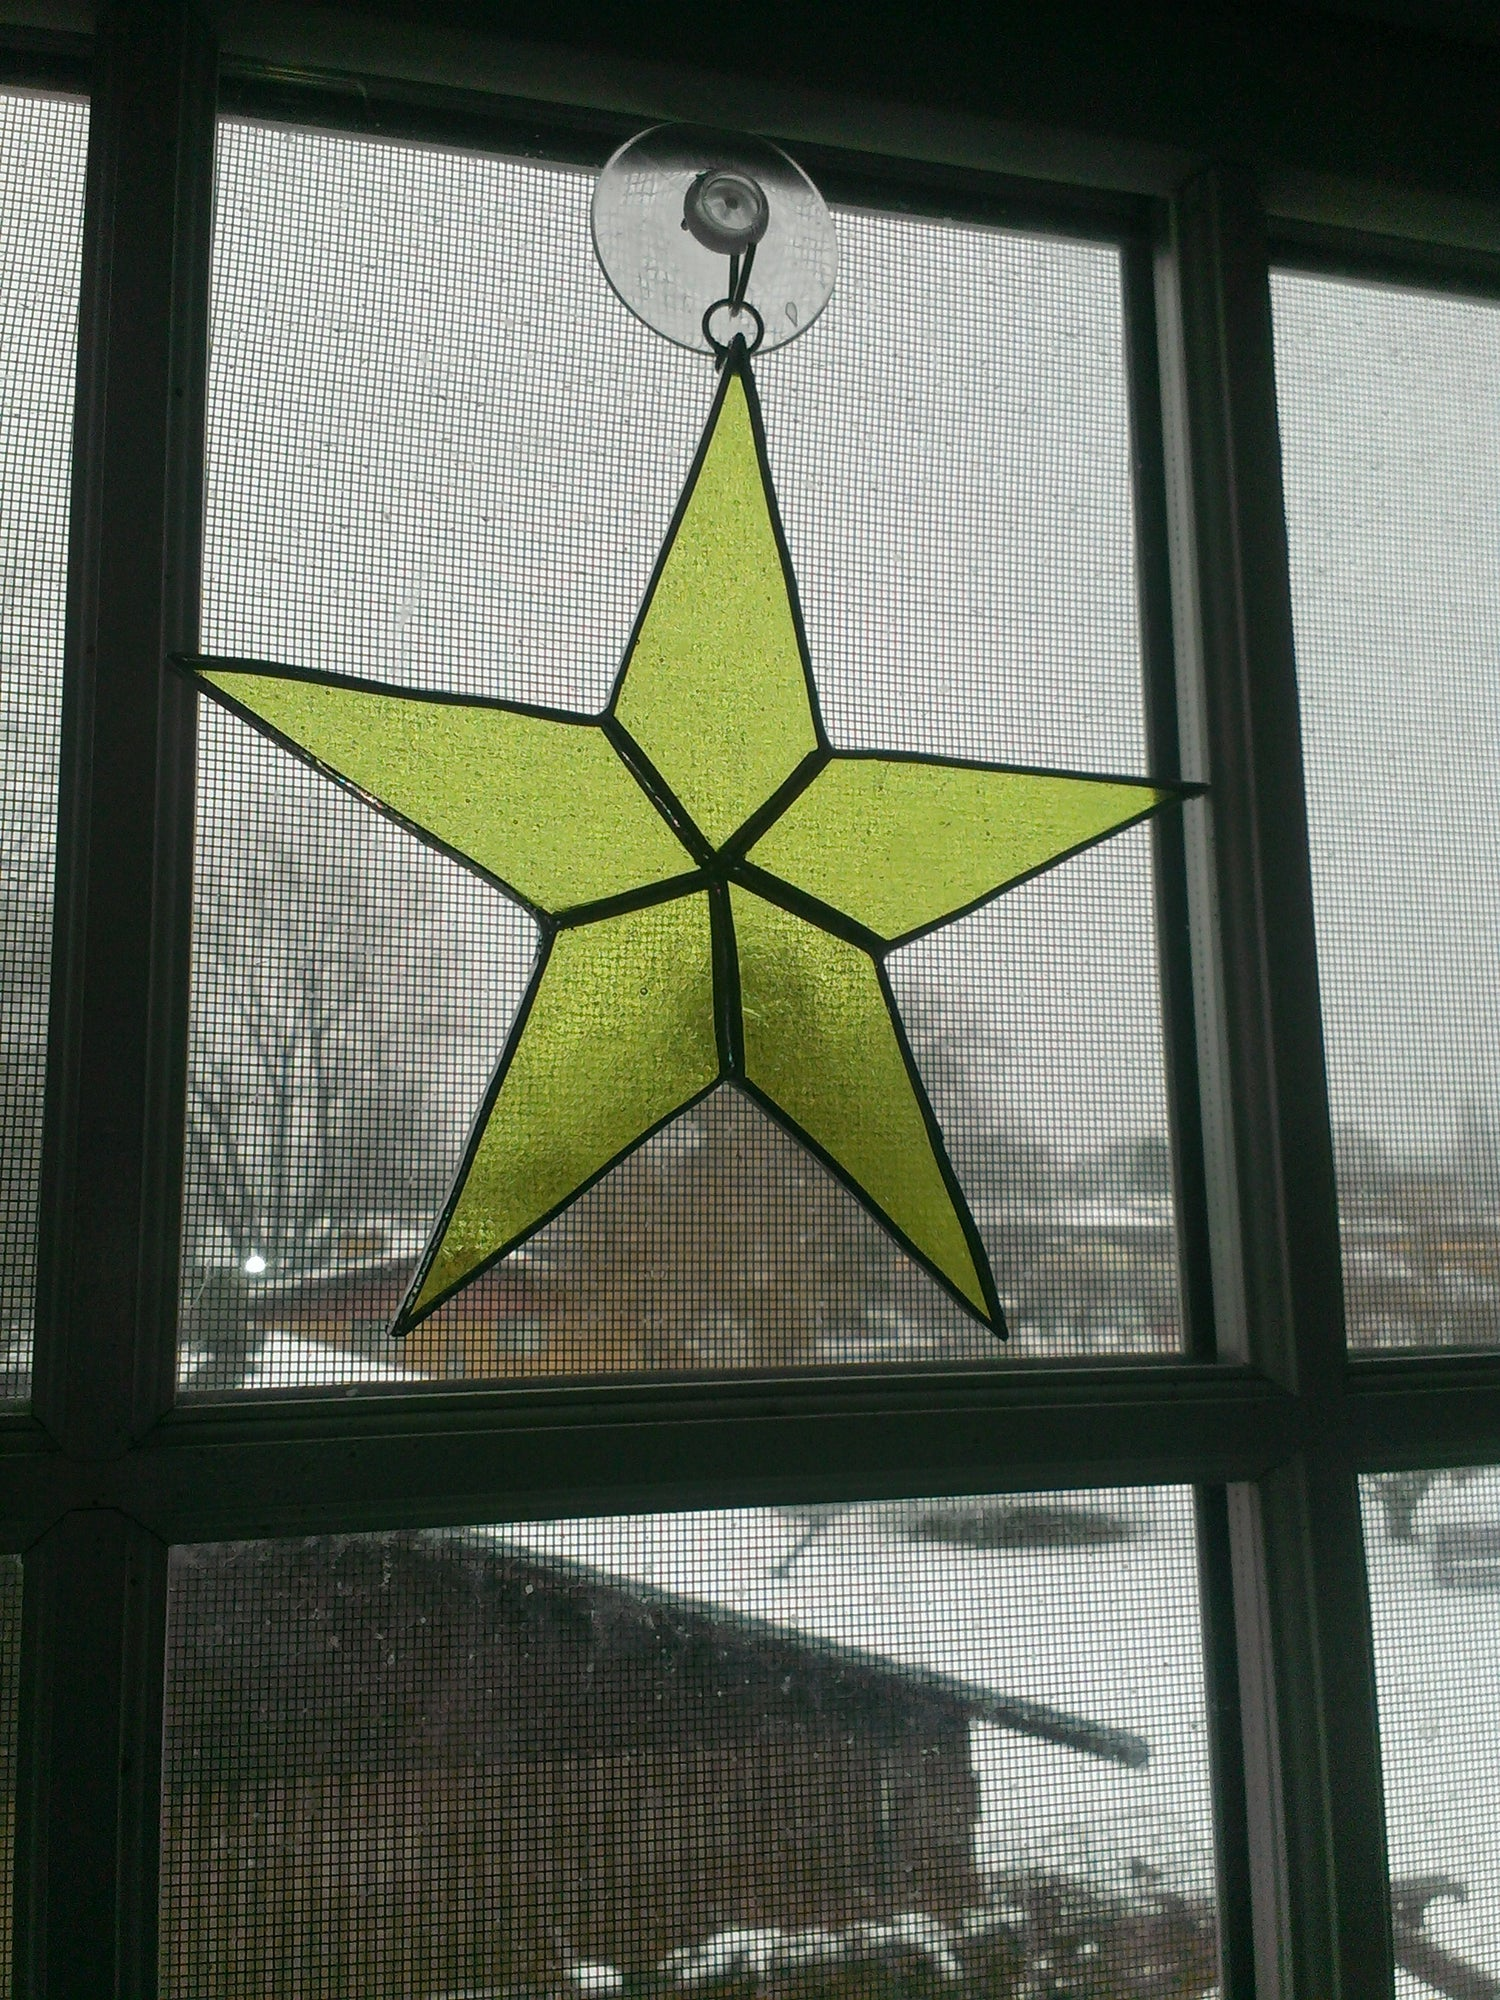 Image of Transparent Solid Star-stained glass